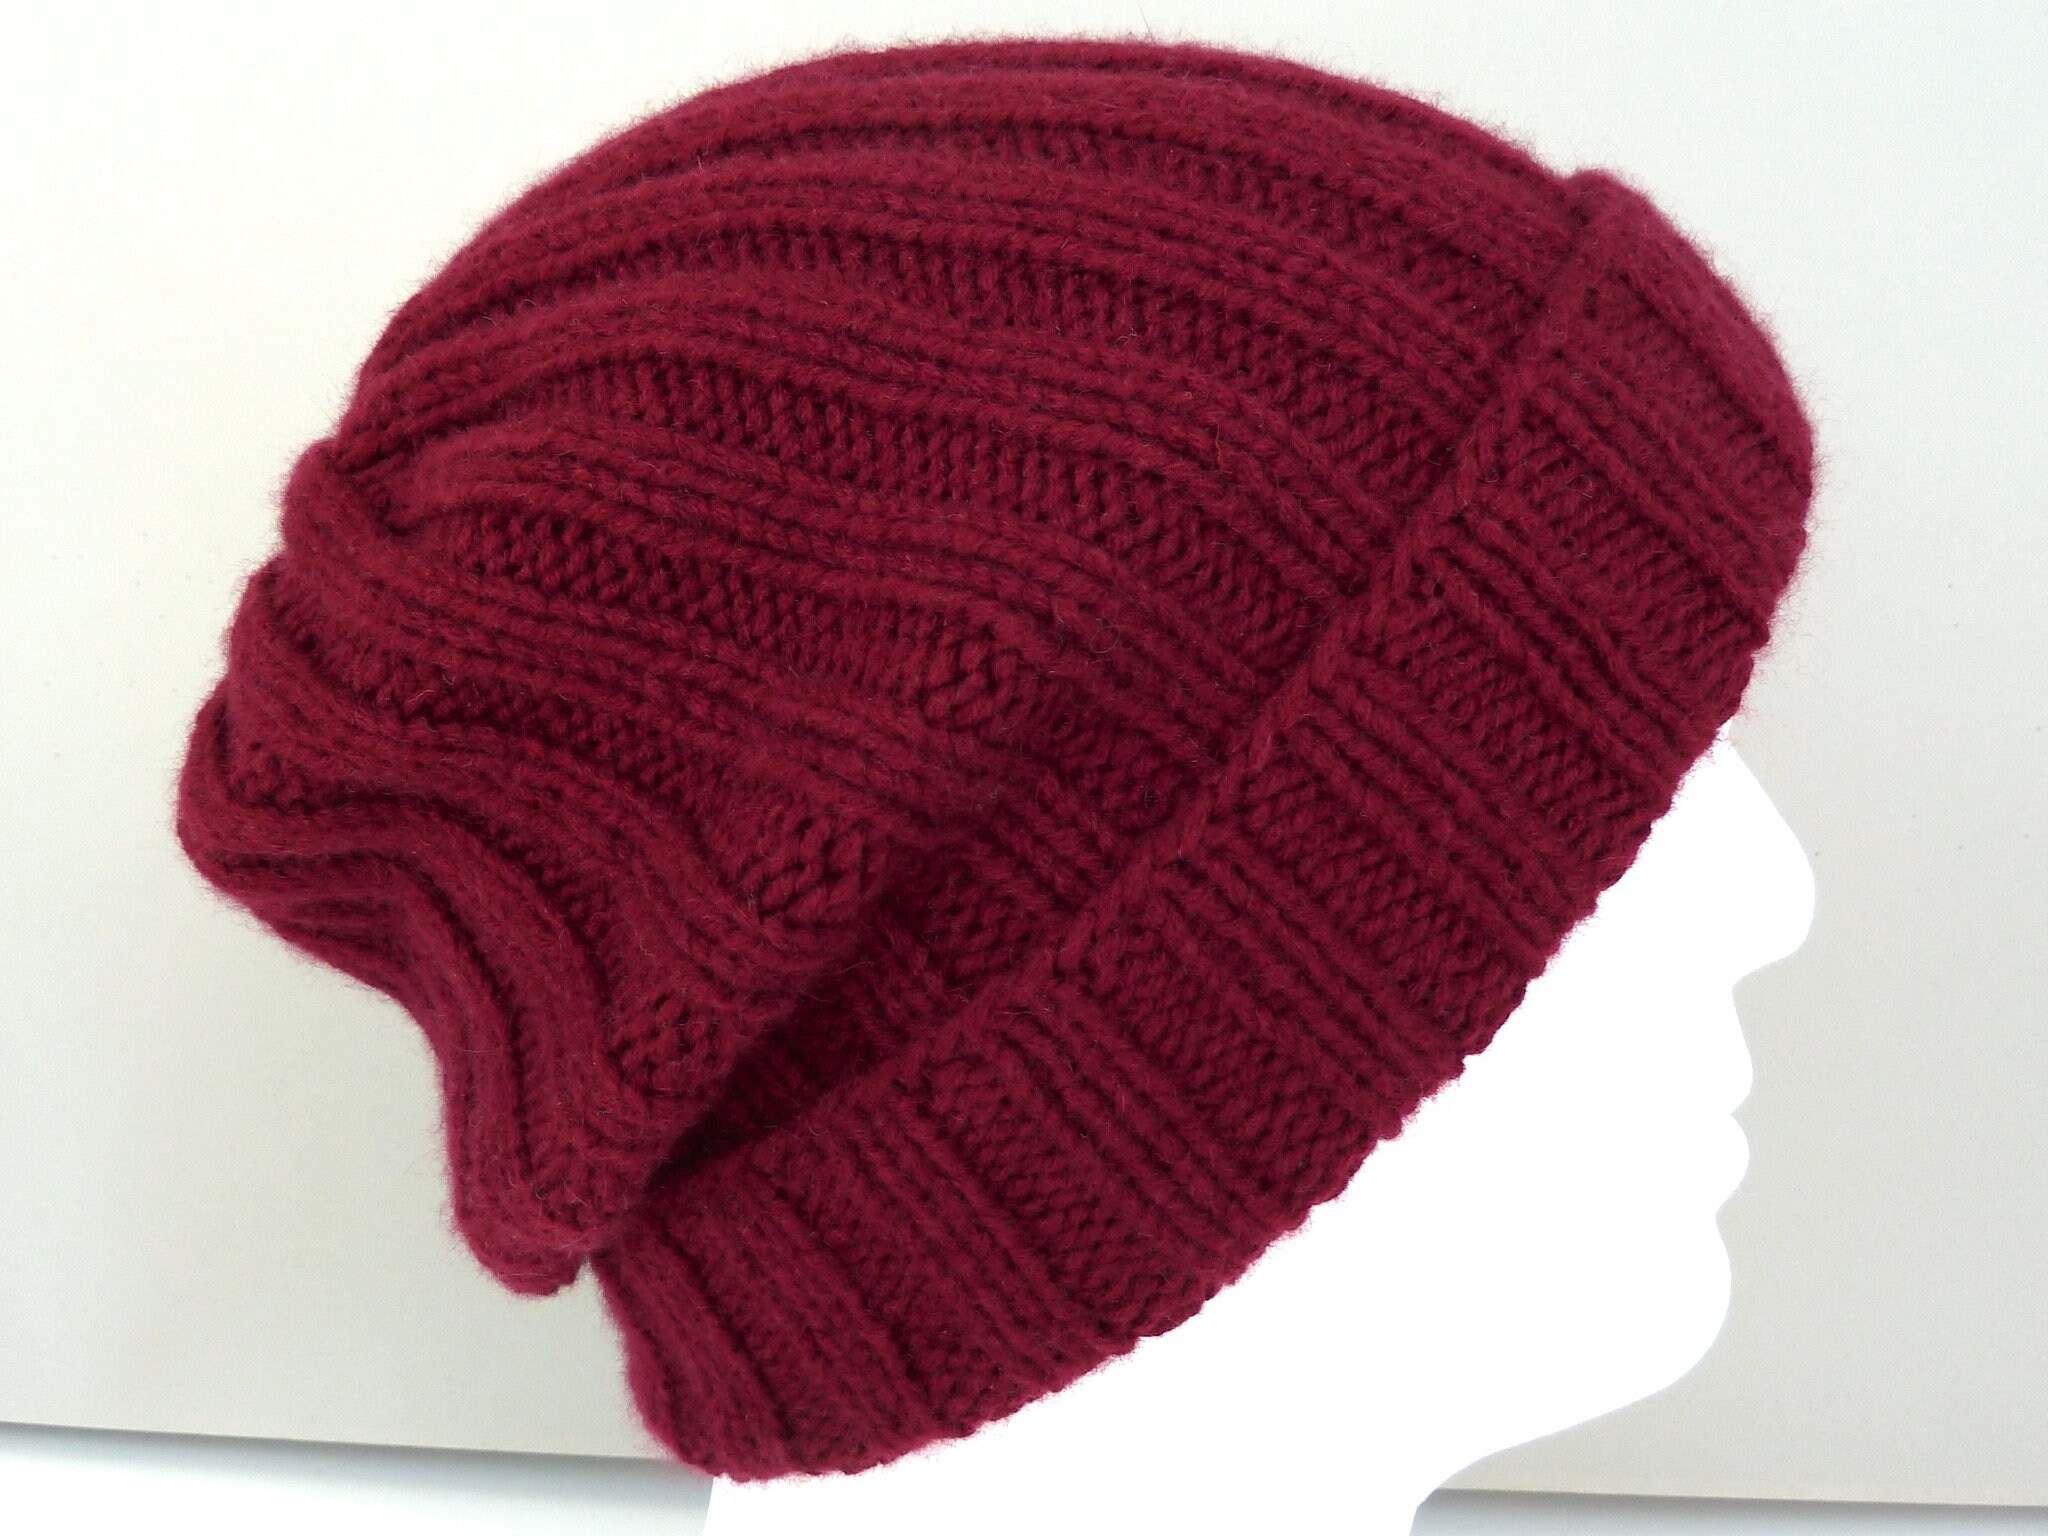 08aad9c2afc Burgundy 100% cashmere hat. Mens hat. Hand knit ribbed beanie.